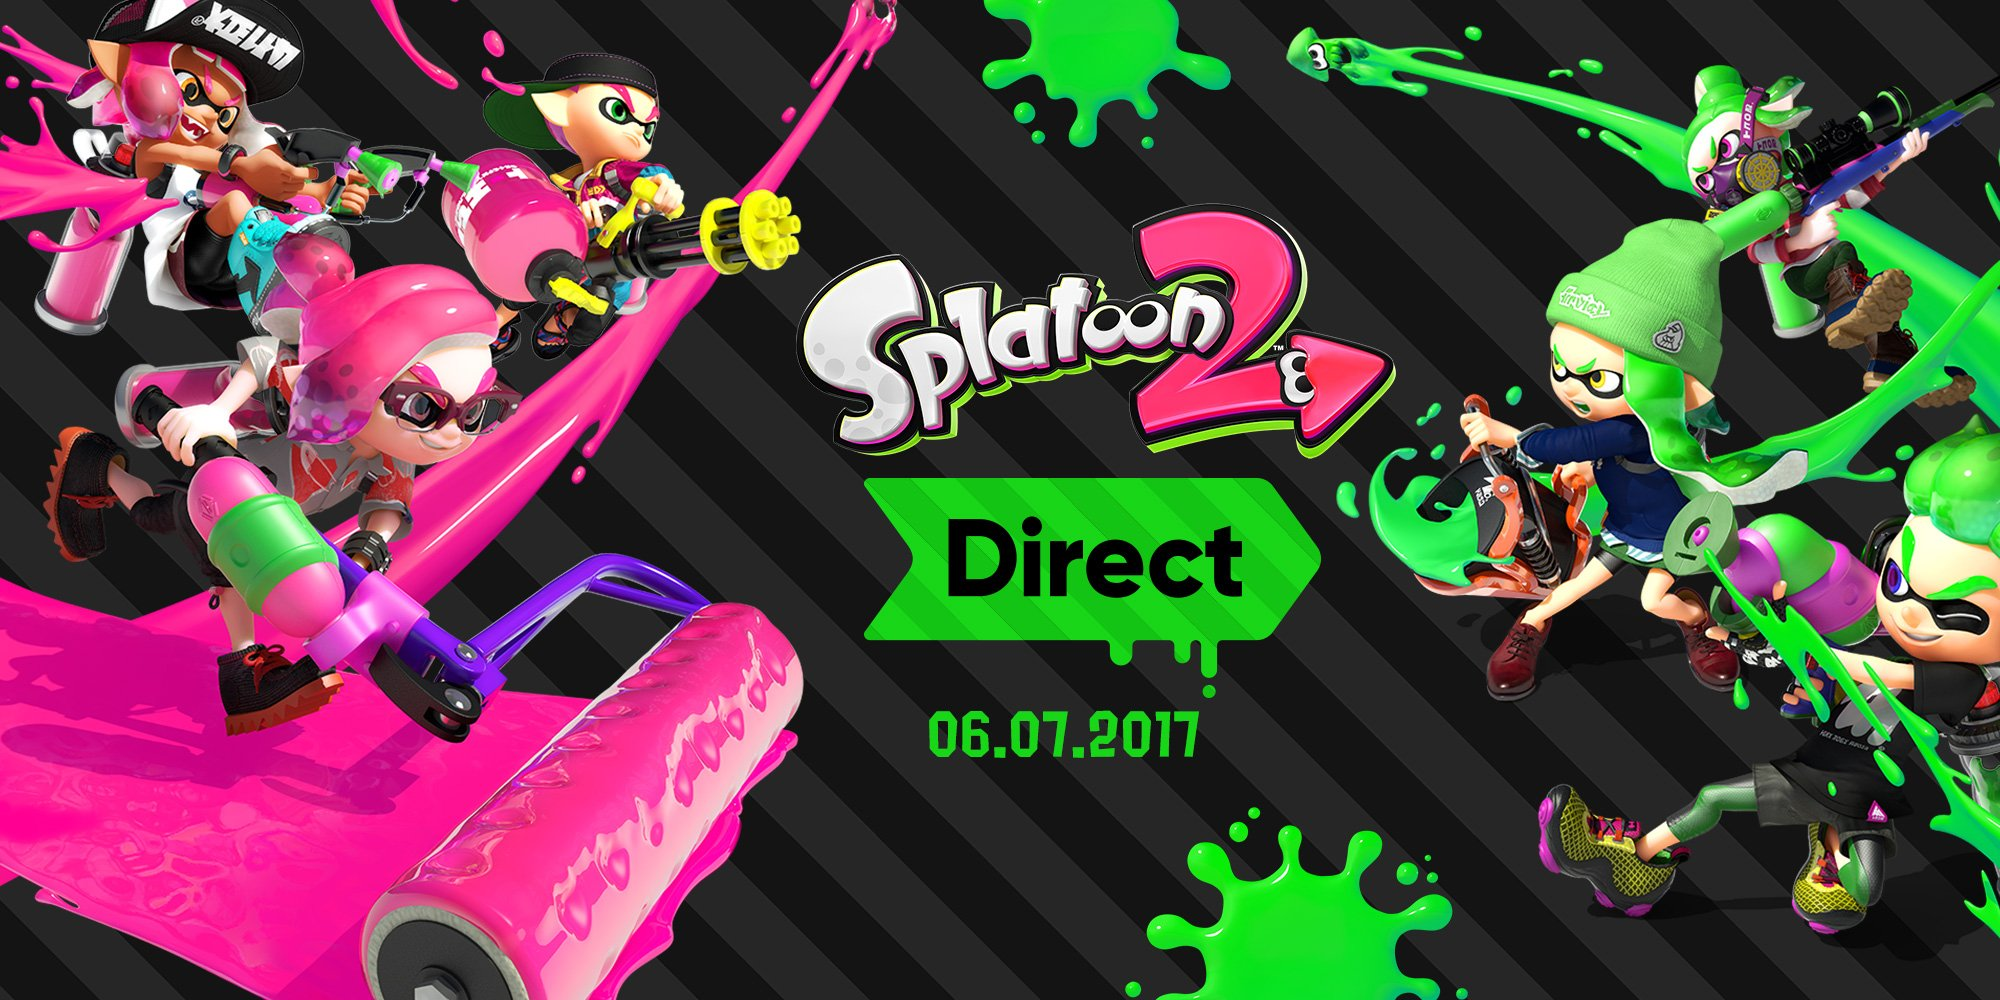 Splatoon2Direct